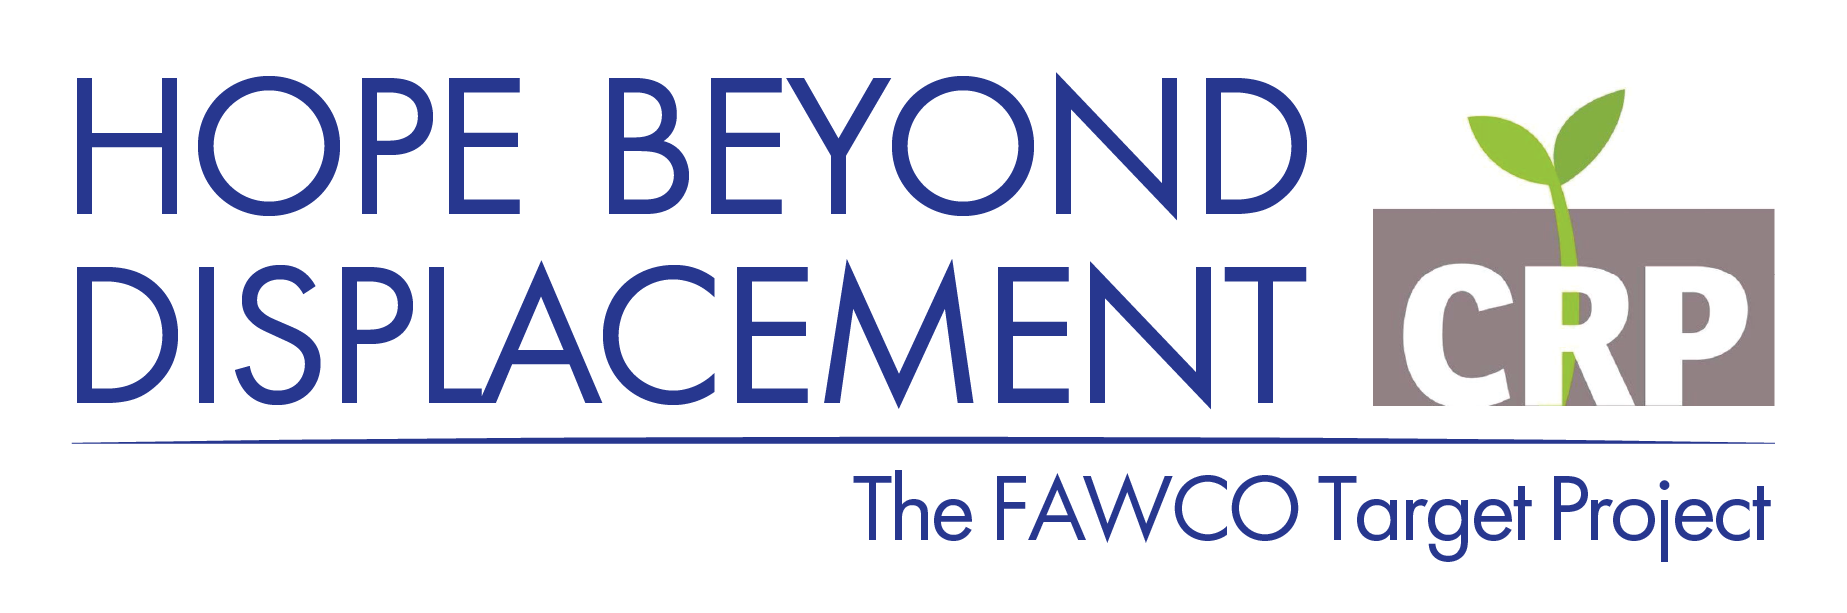 Hope Beyond Displacement Logo